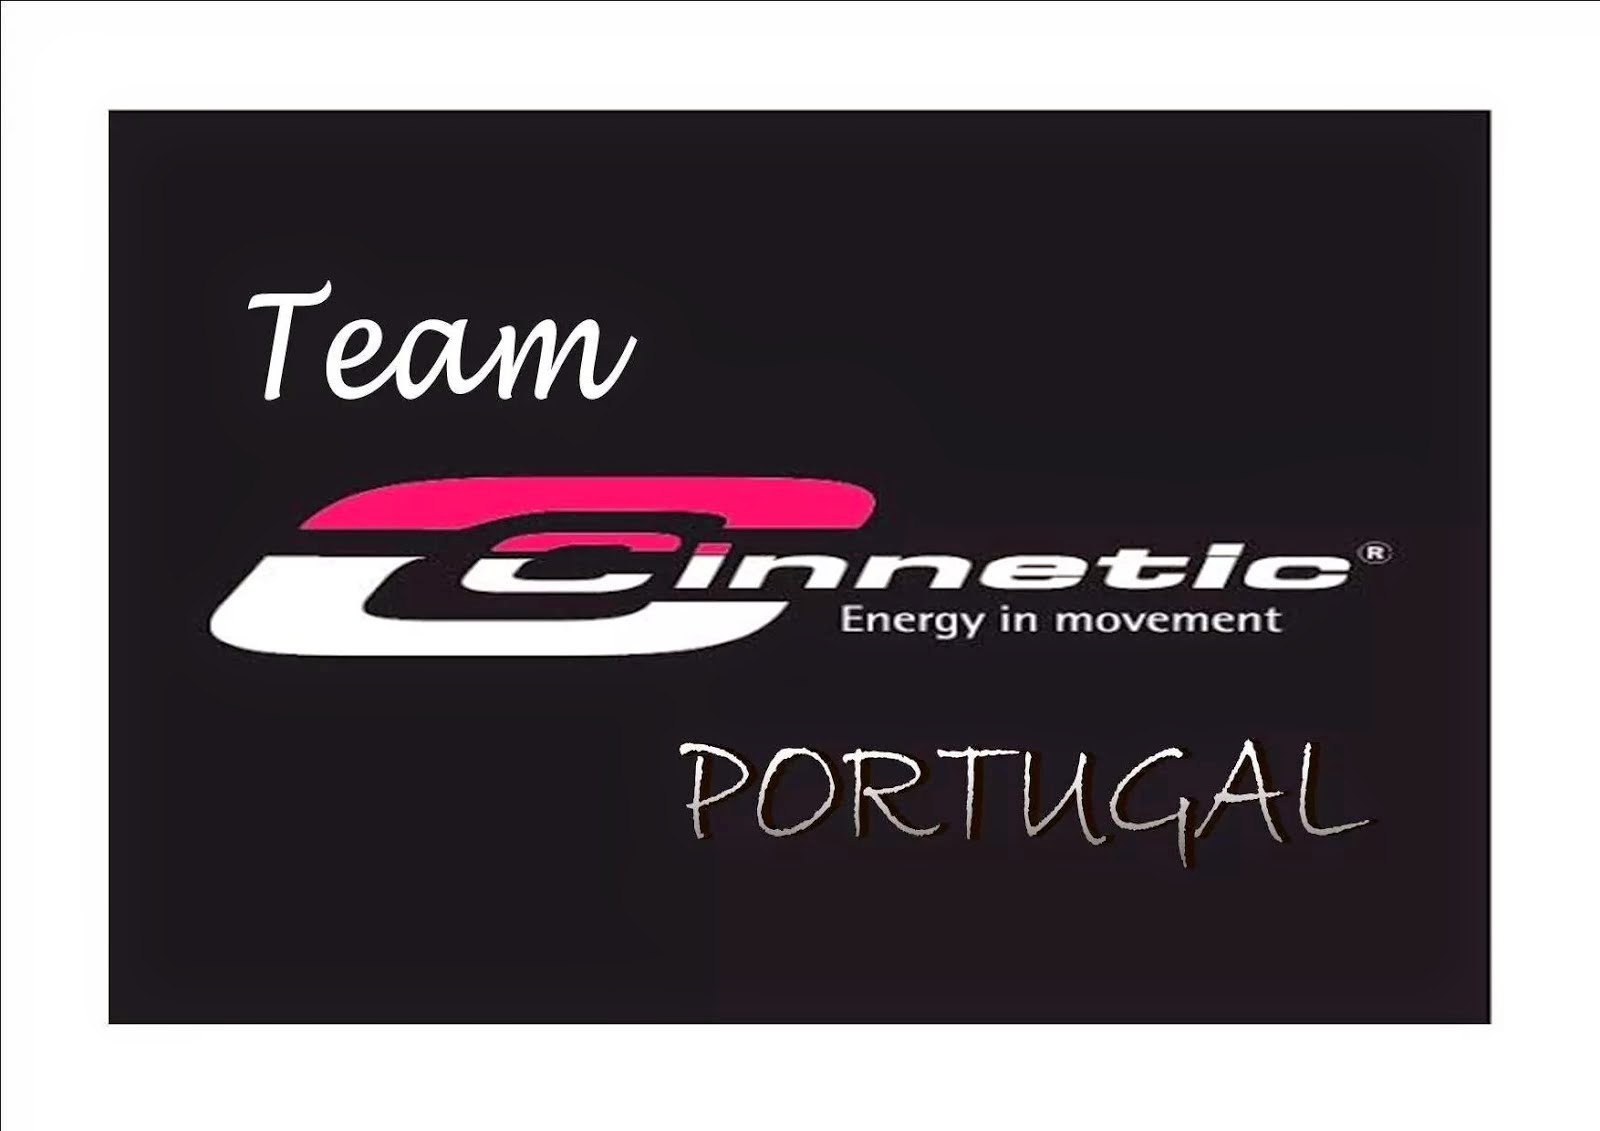 Team Cinnetic Portugal